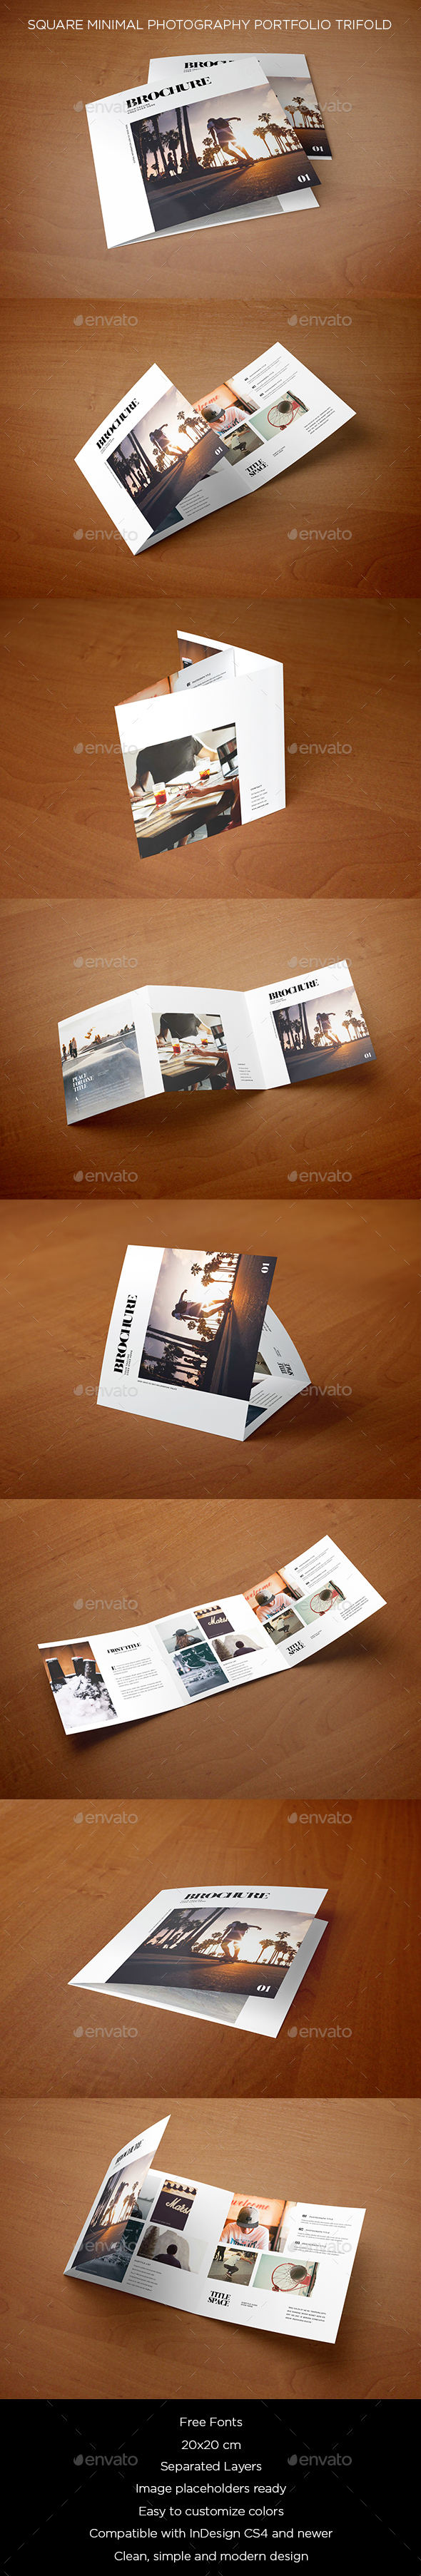 Square Minimal Photography Portfolio Trifold - Brochures Print Templates